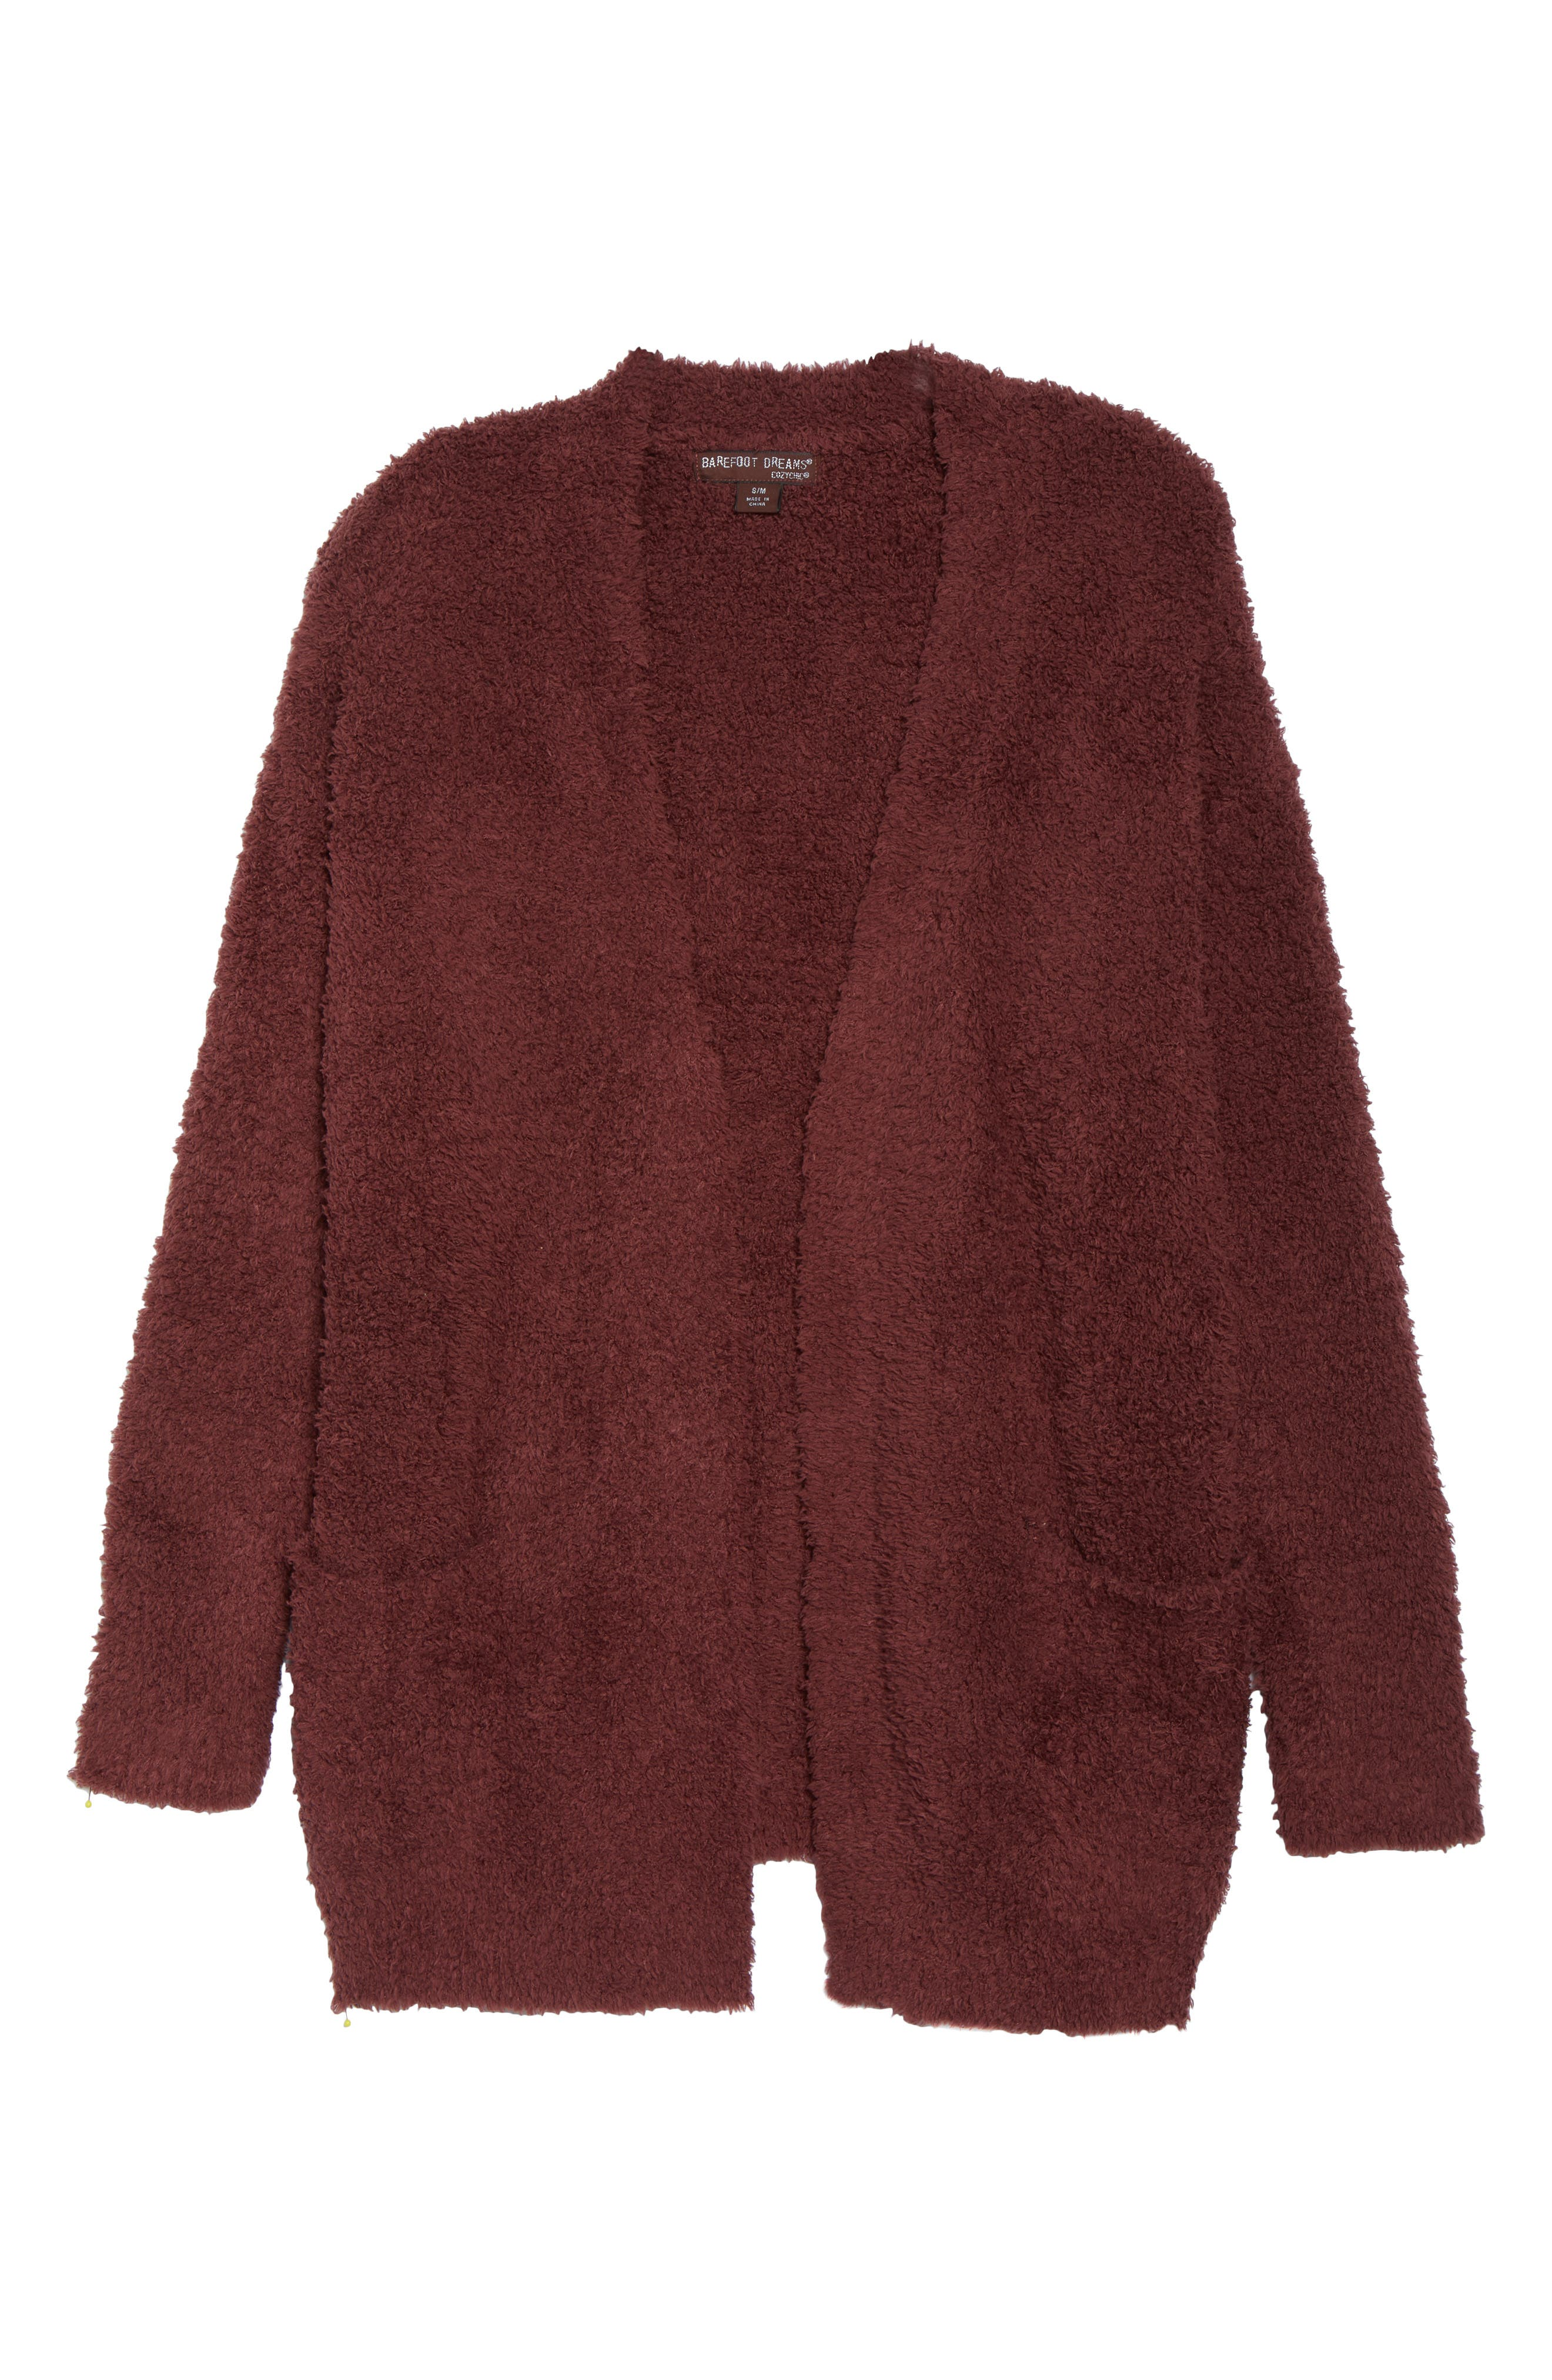 CozyChic<sup>®</sup> Cardigan,                             Alternate thumbnail 6, color,                             ROSEWOOD